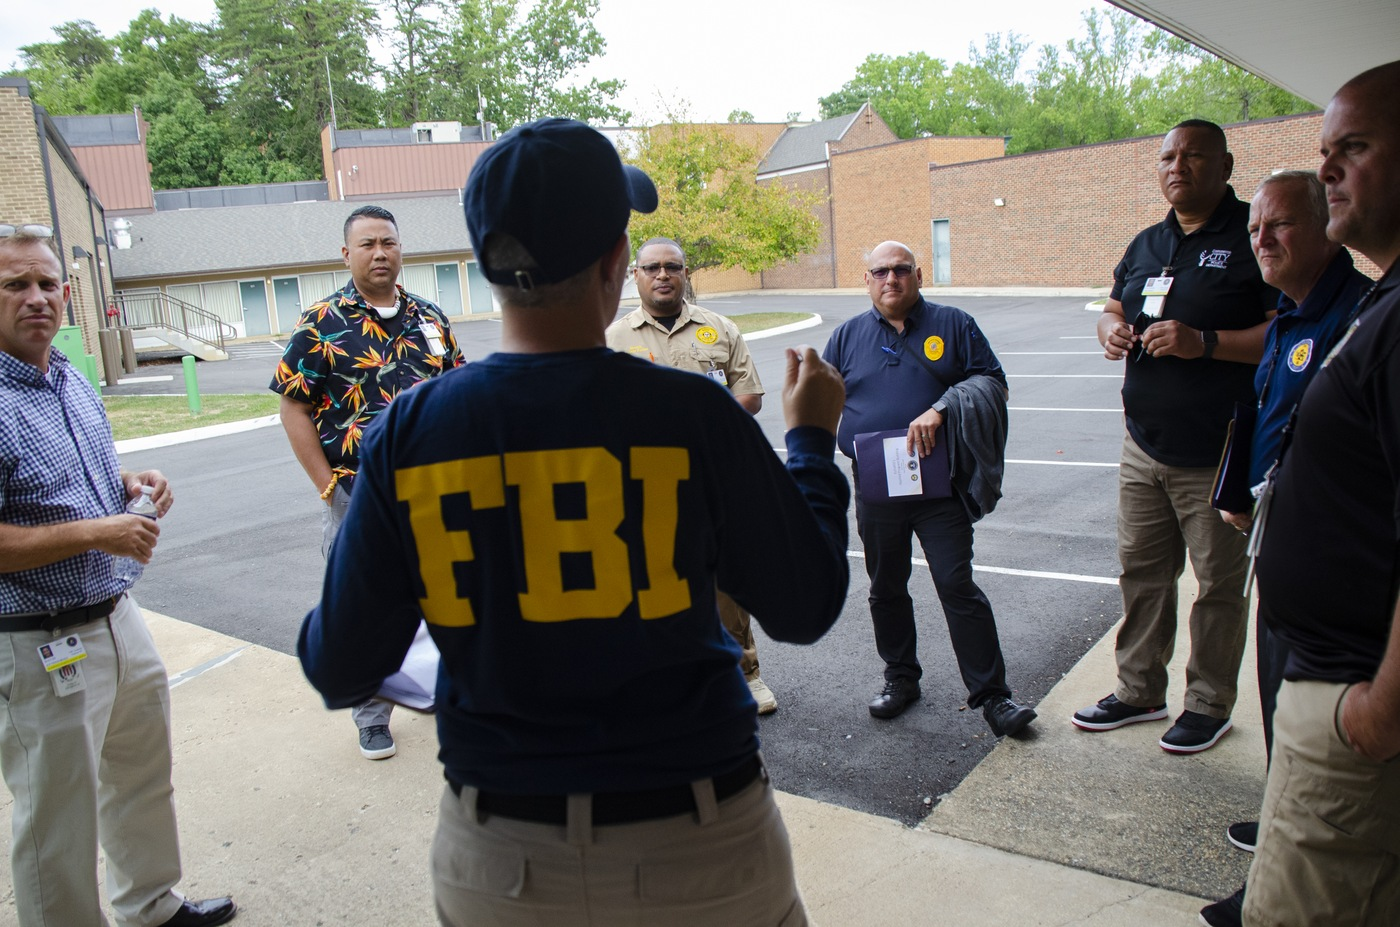 Rebecca Elam, a Victim Services Division program manager, briefs visiting command police officers during a September 25, 2019, mass-casualty exercise at the FBI Training Academy in Quantico, Virginia. The exercise culminated ELEVATE-APB training for victim service providers.